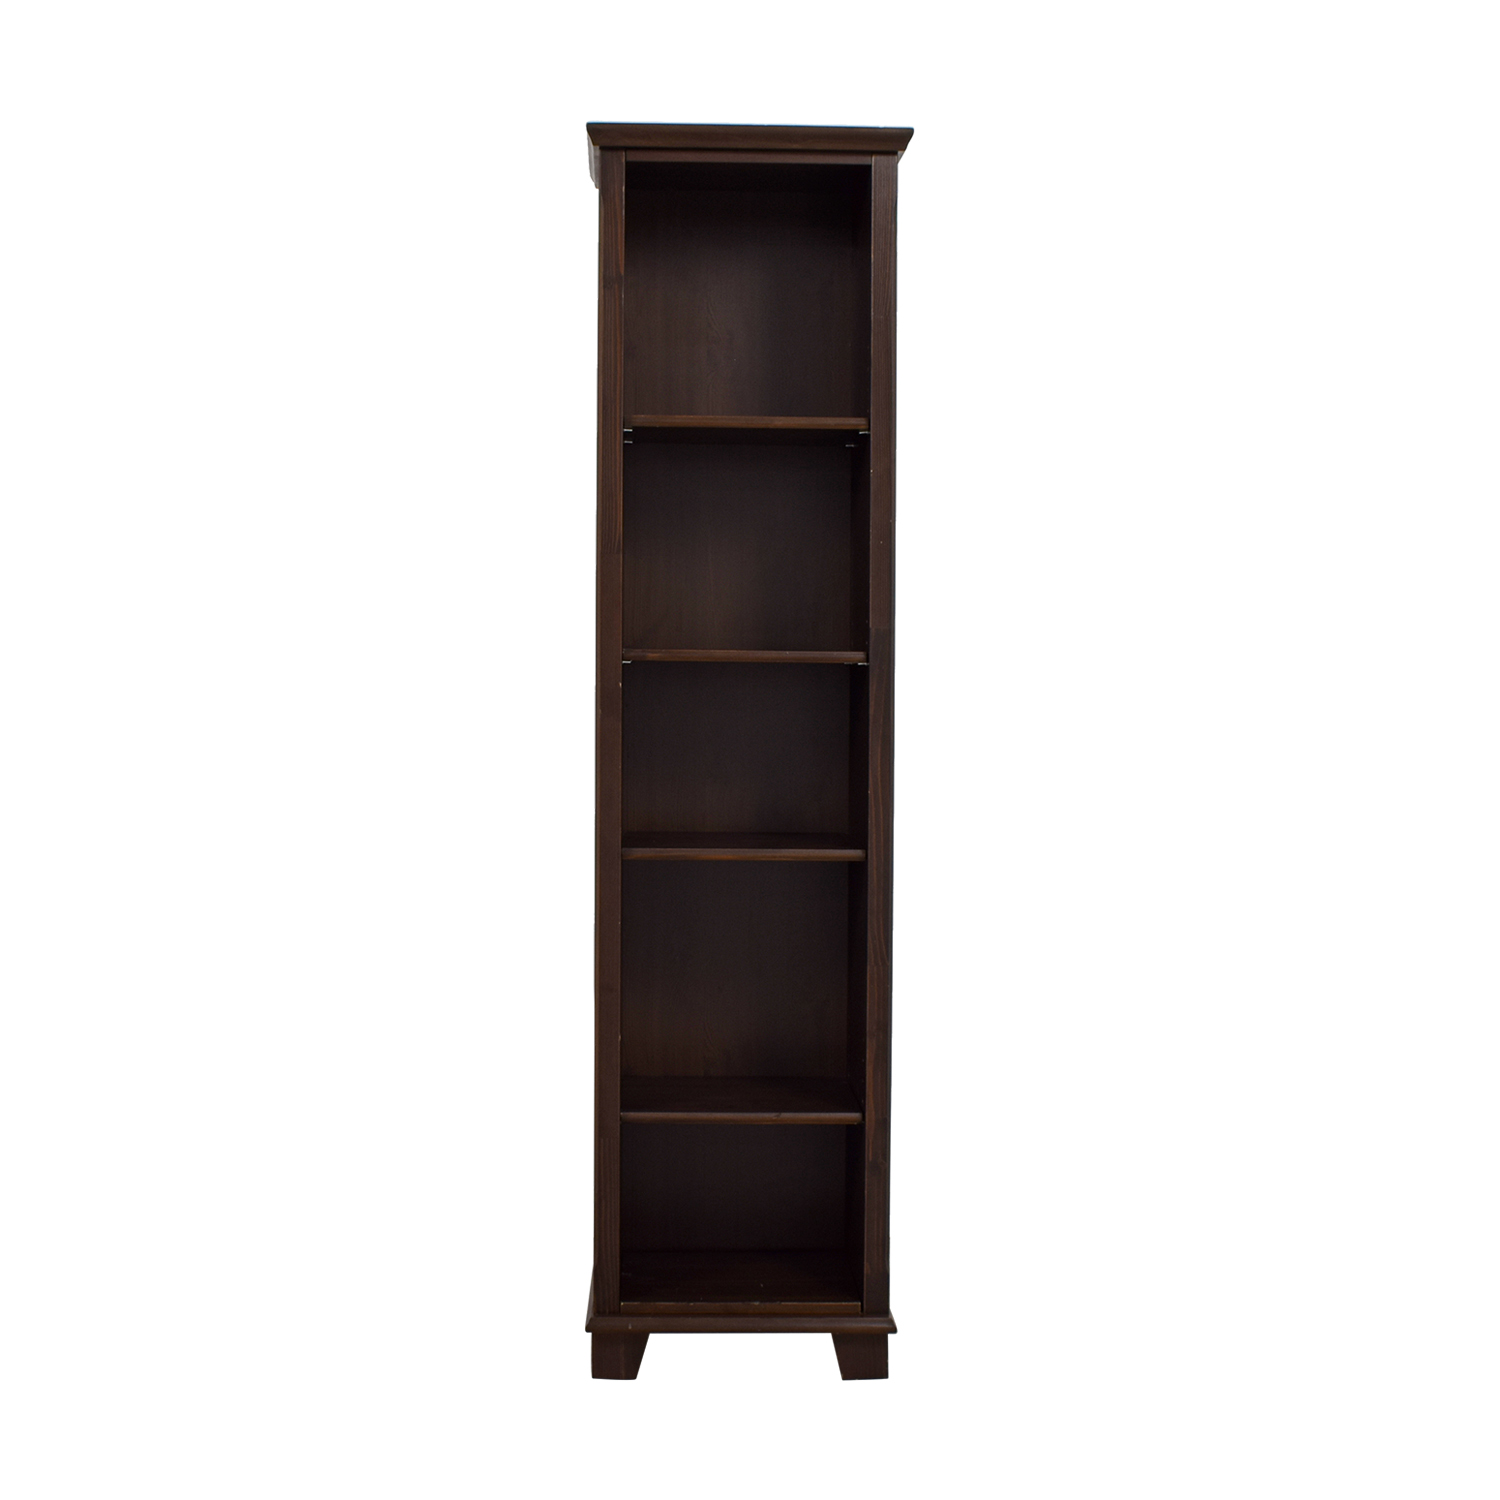 Outstanding 57 Off Ikea Ikea Tall Barrow Bookcase Storage Home Interior And Landscaping Eliaenasavecom